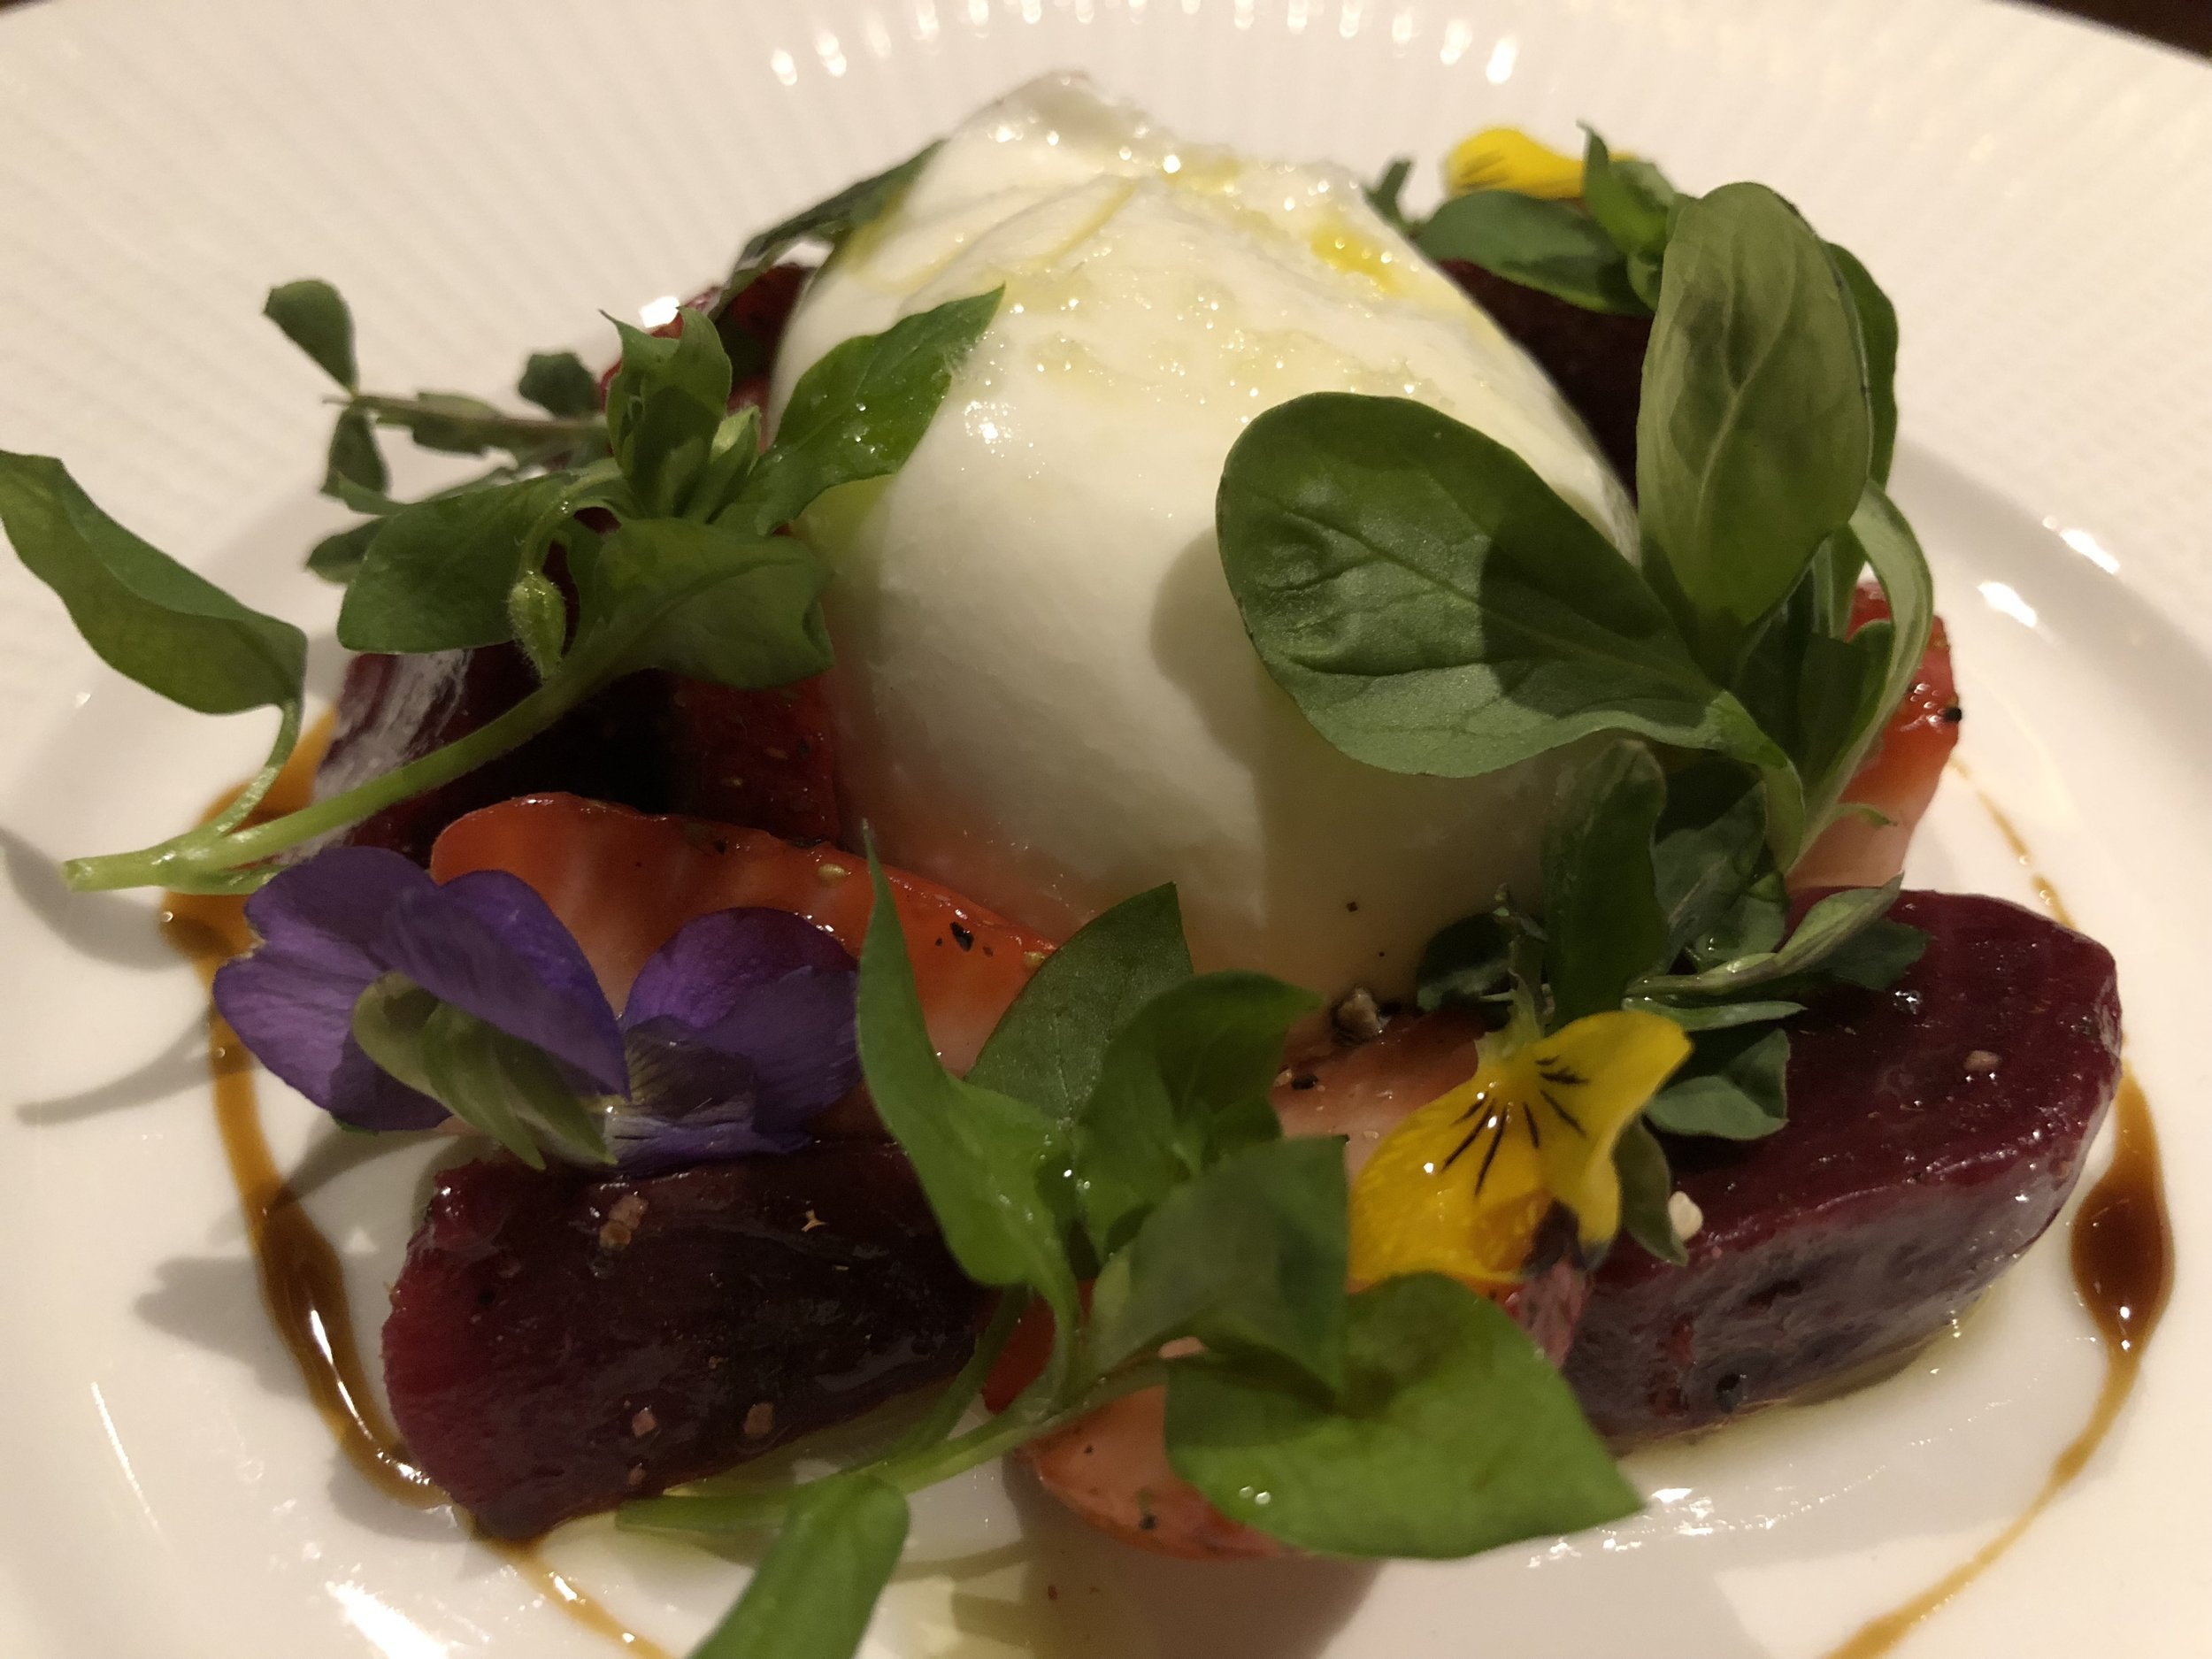 Burrata - strawberry, roasted beet, arugula, black pepper, pedro ximenez sherry vinegar, black garlic molassses, crustini